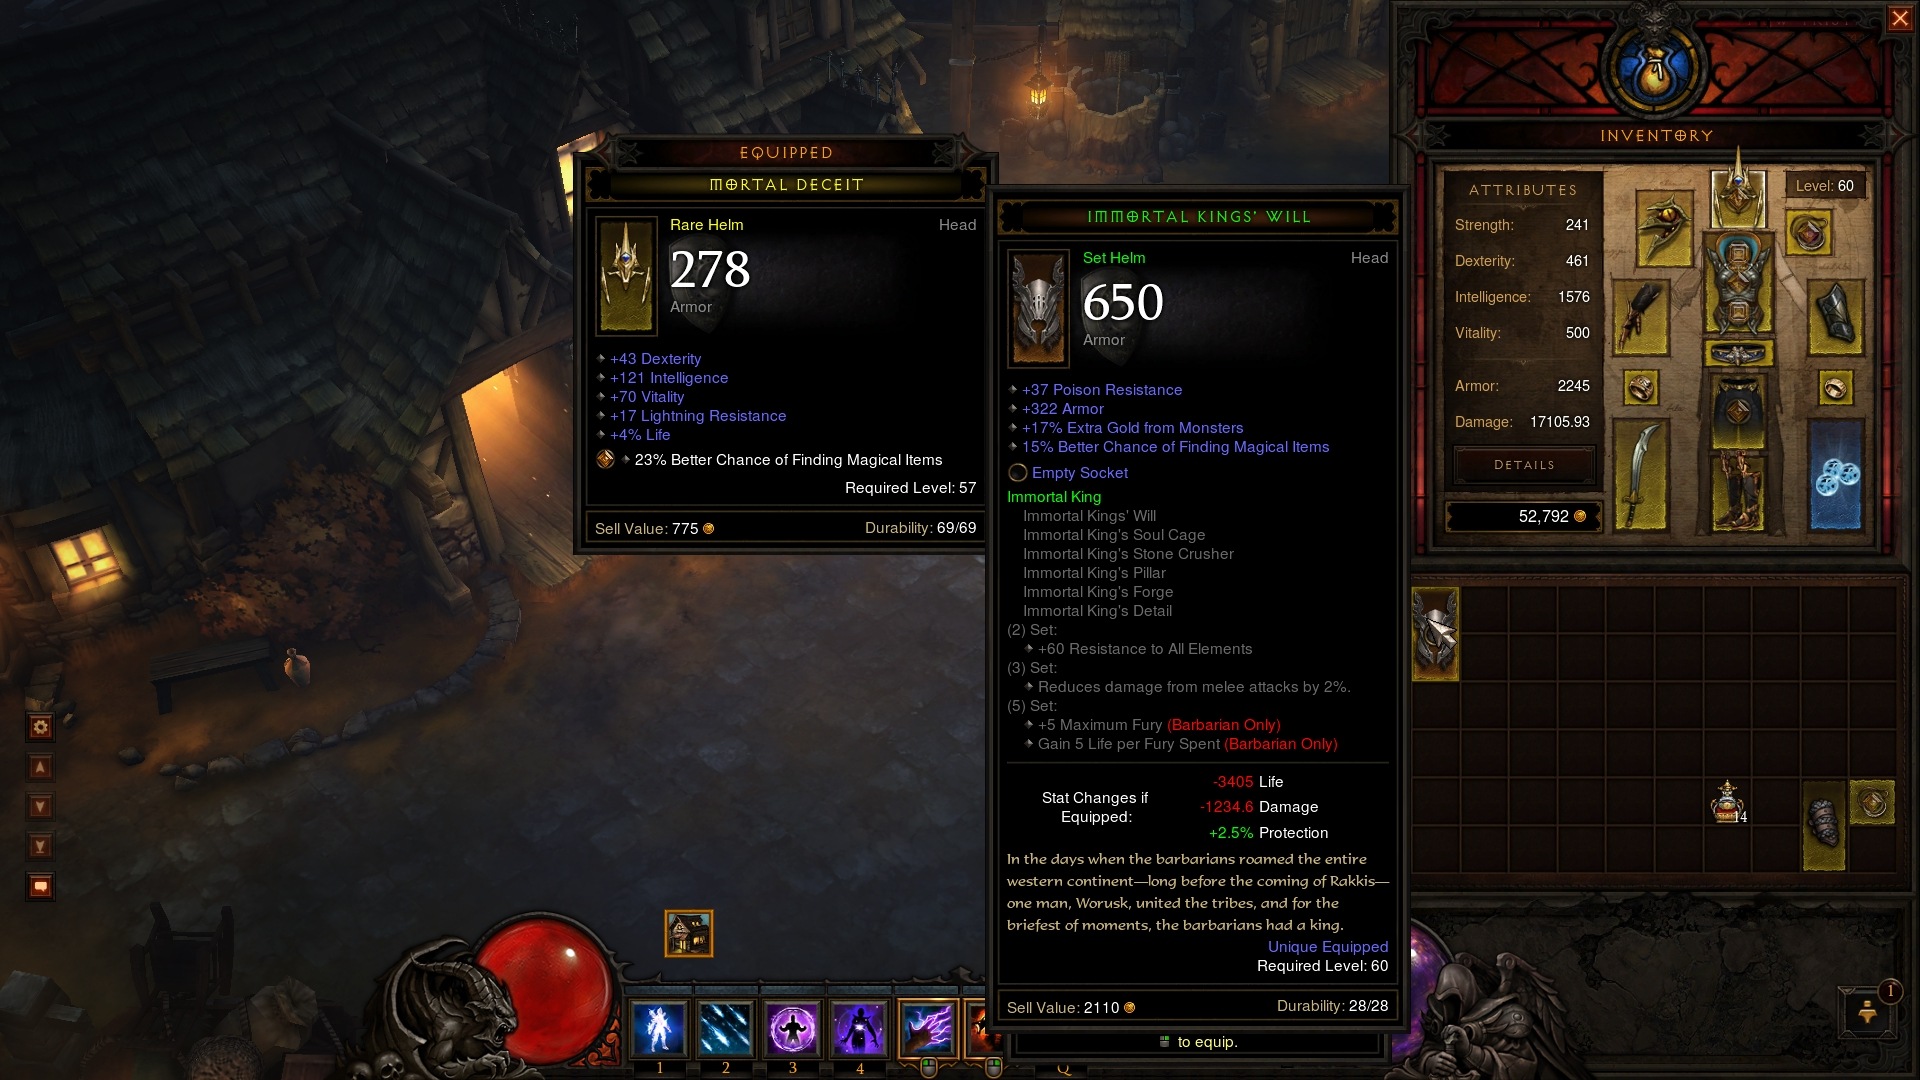 jinn games dont peculiar know what think this just show post trading your diablo legendary